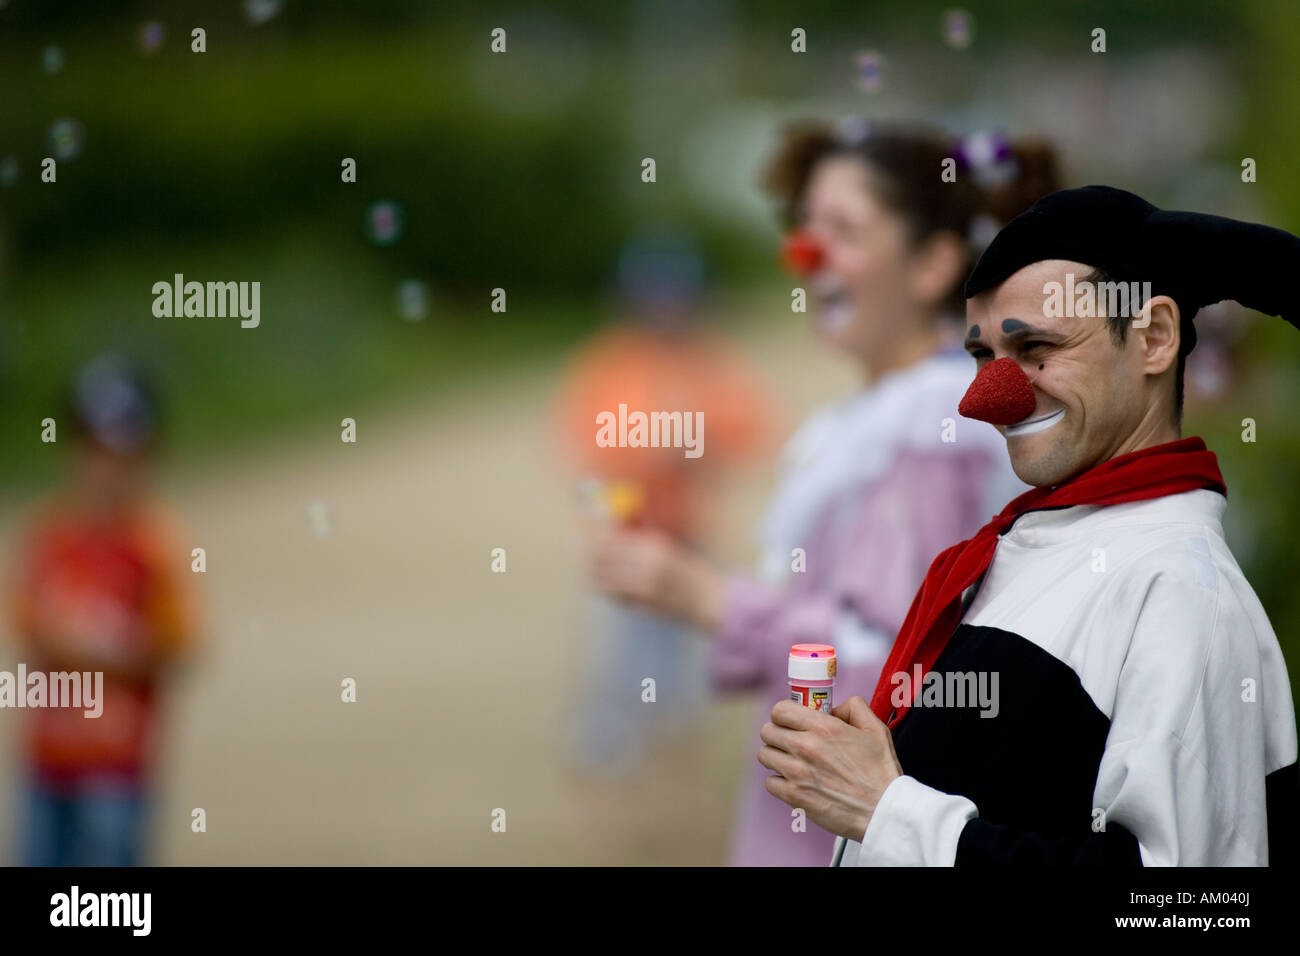 Duo 'Die Aussenseiter' (The Outsiders), Internationales Kleinkunstfestival Usedom, Germany - Stock Image